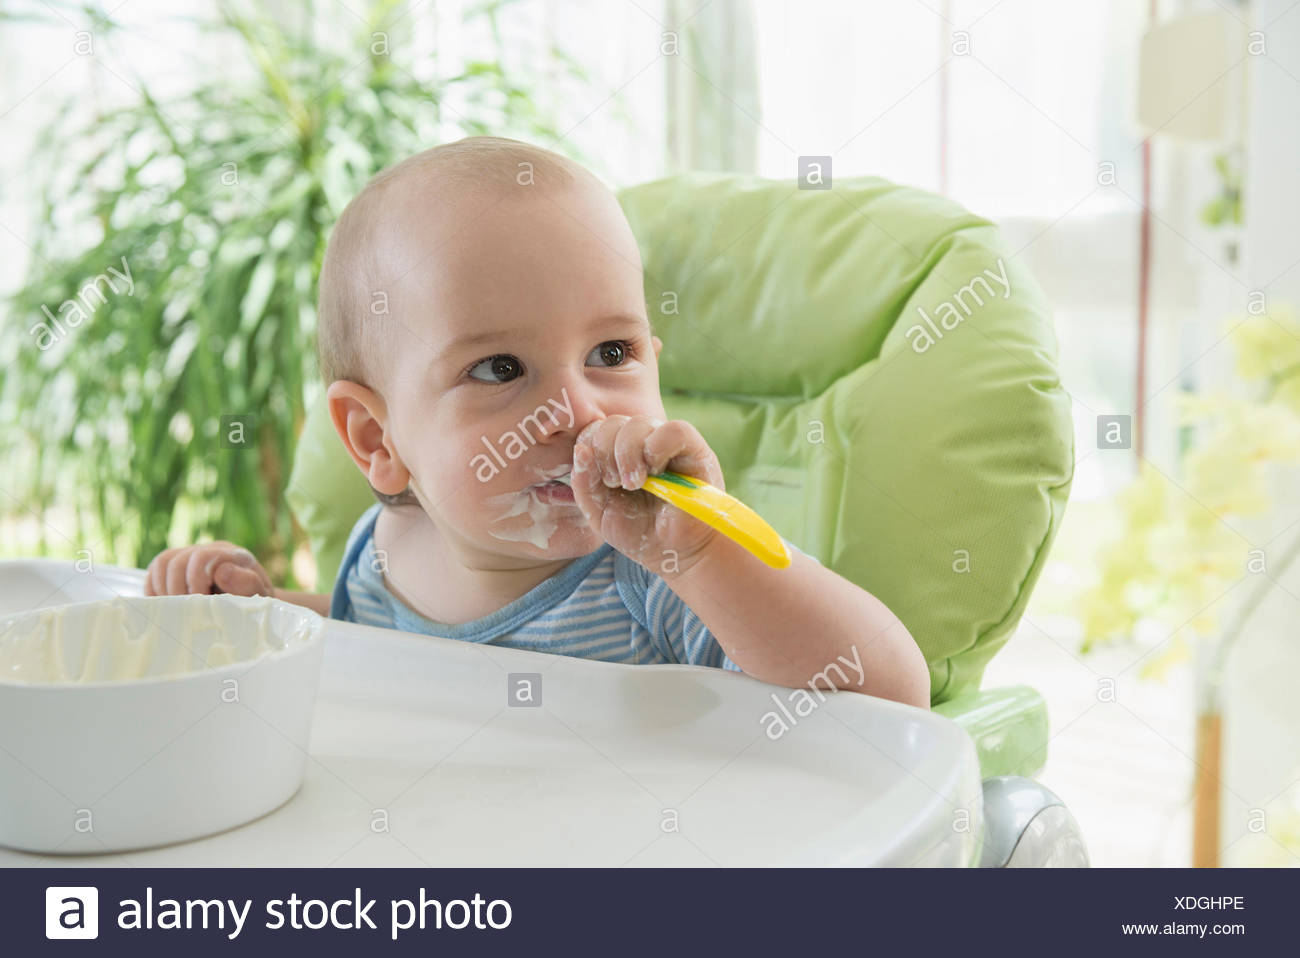 Baby Food Chair Messy Face Baby Eating Stock Photos And Messy Face Baby